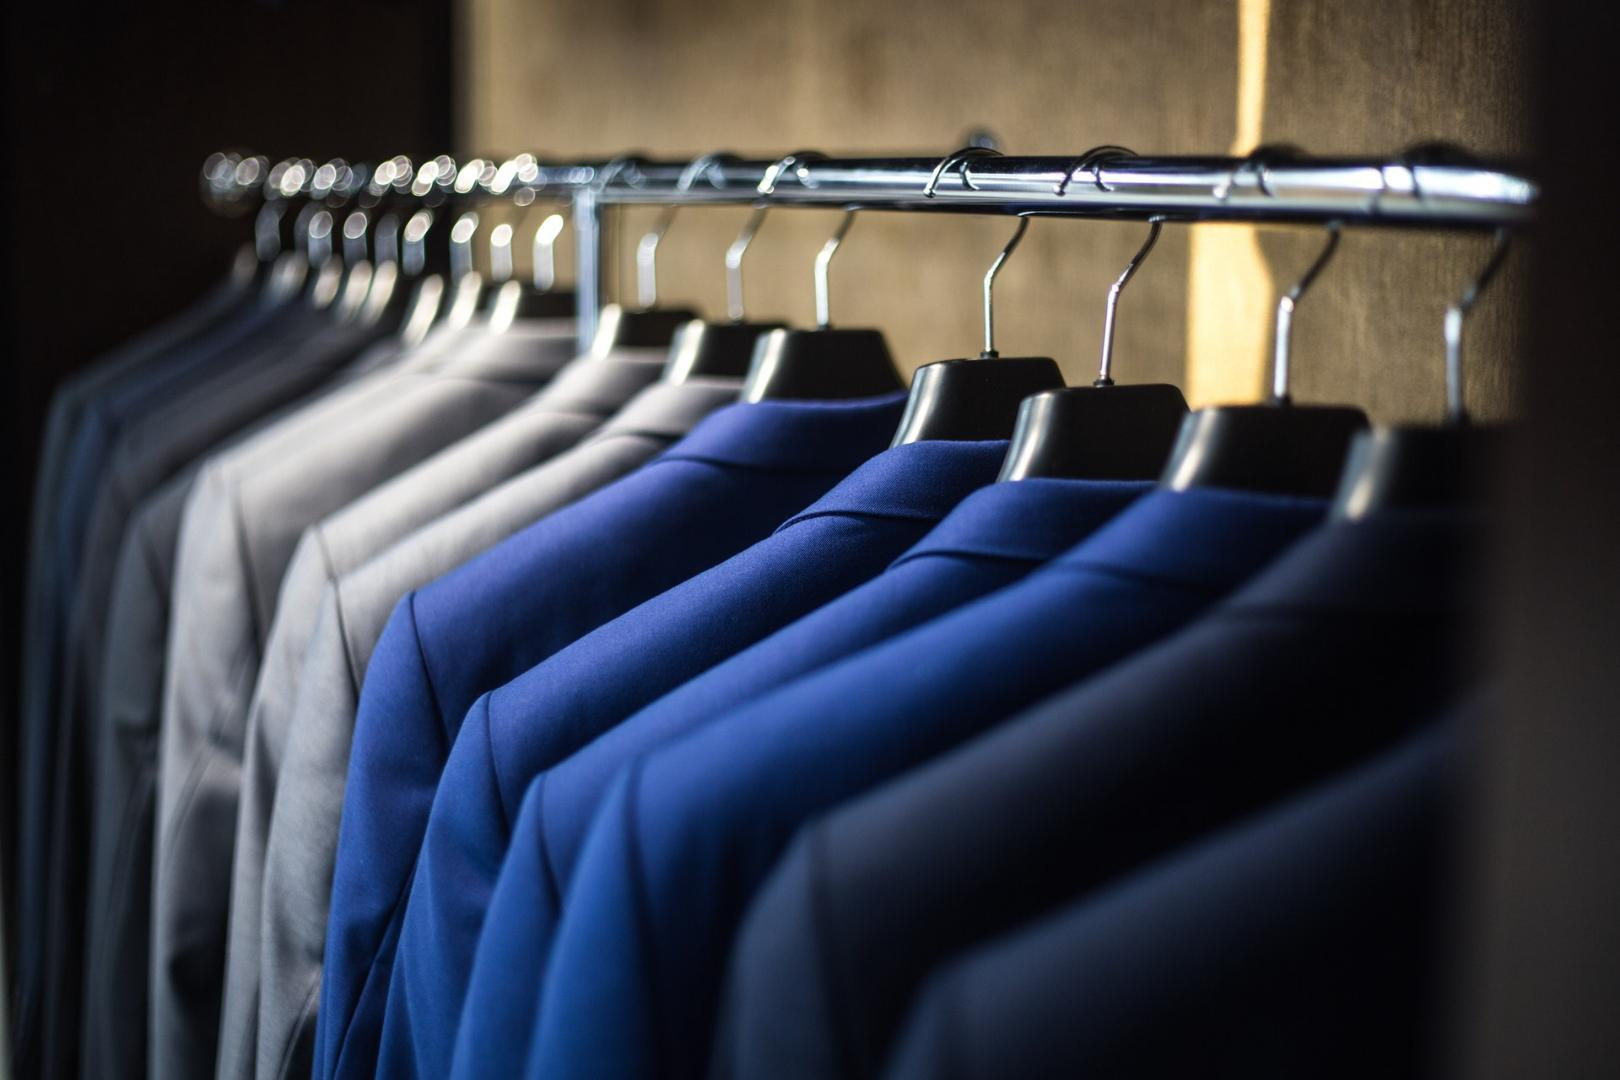 Suits on hangers